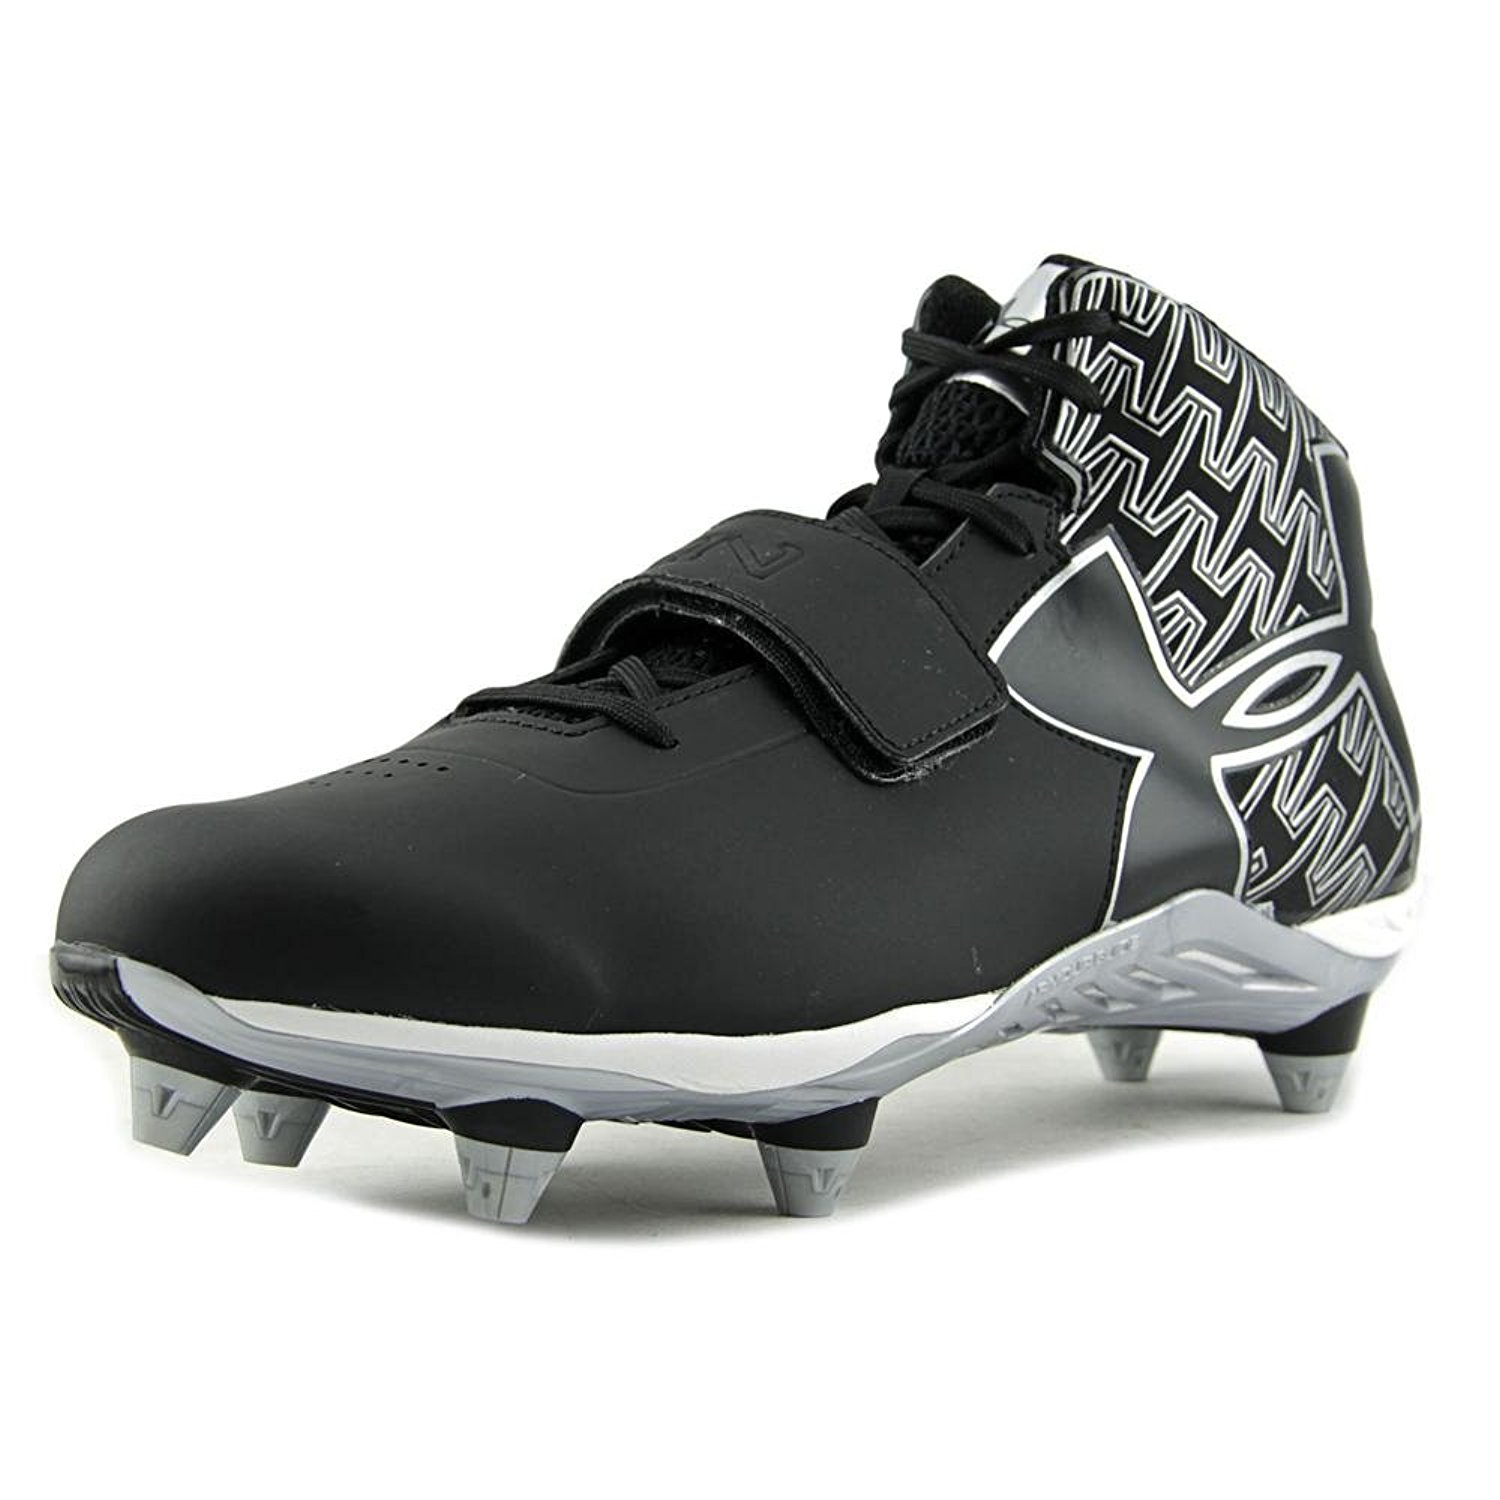 Under Armour C1N Mid D Football Cleats Men W Round Toe Synthetic Black  Cleats fe64185a6bfd